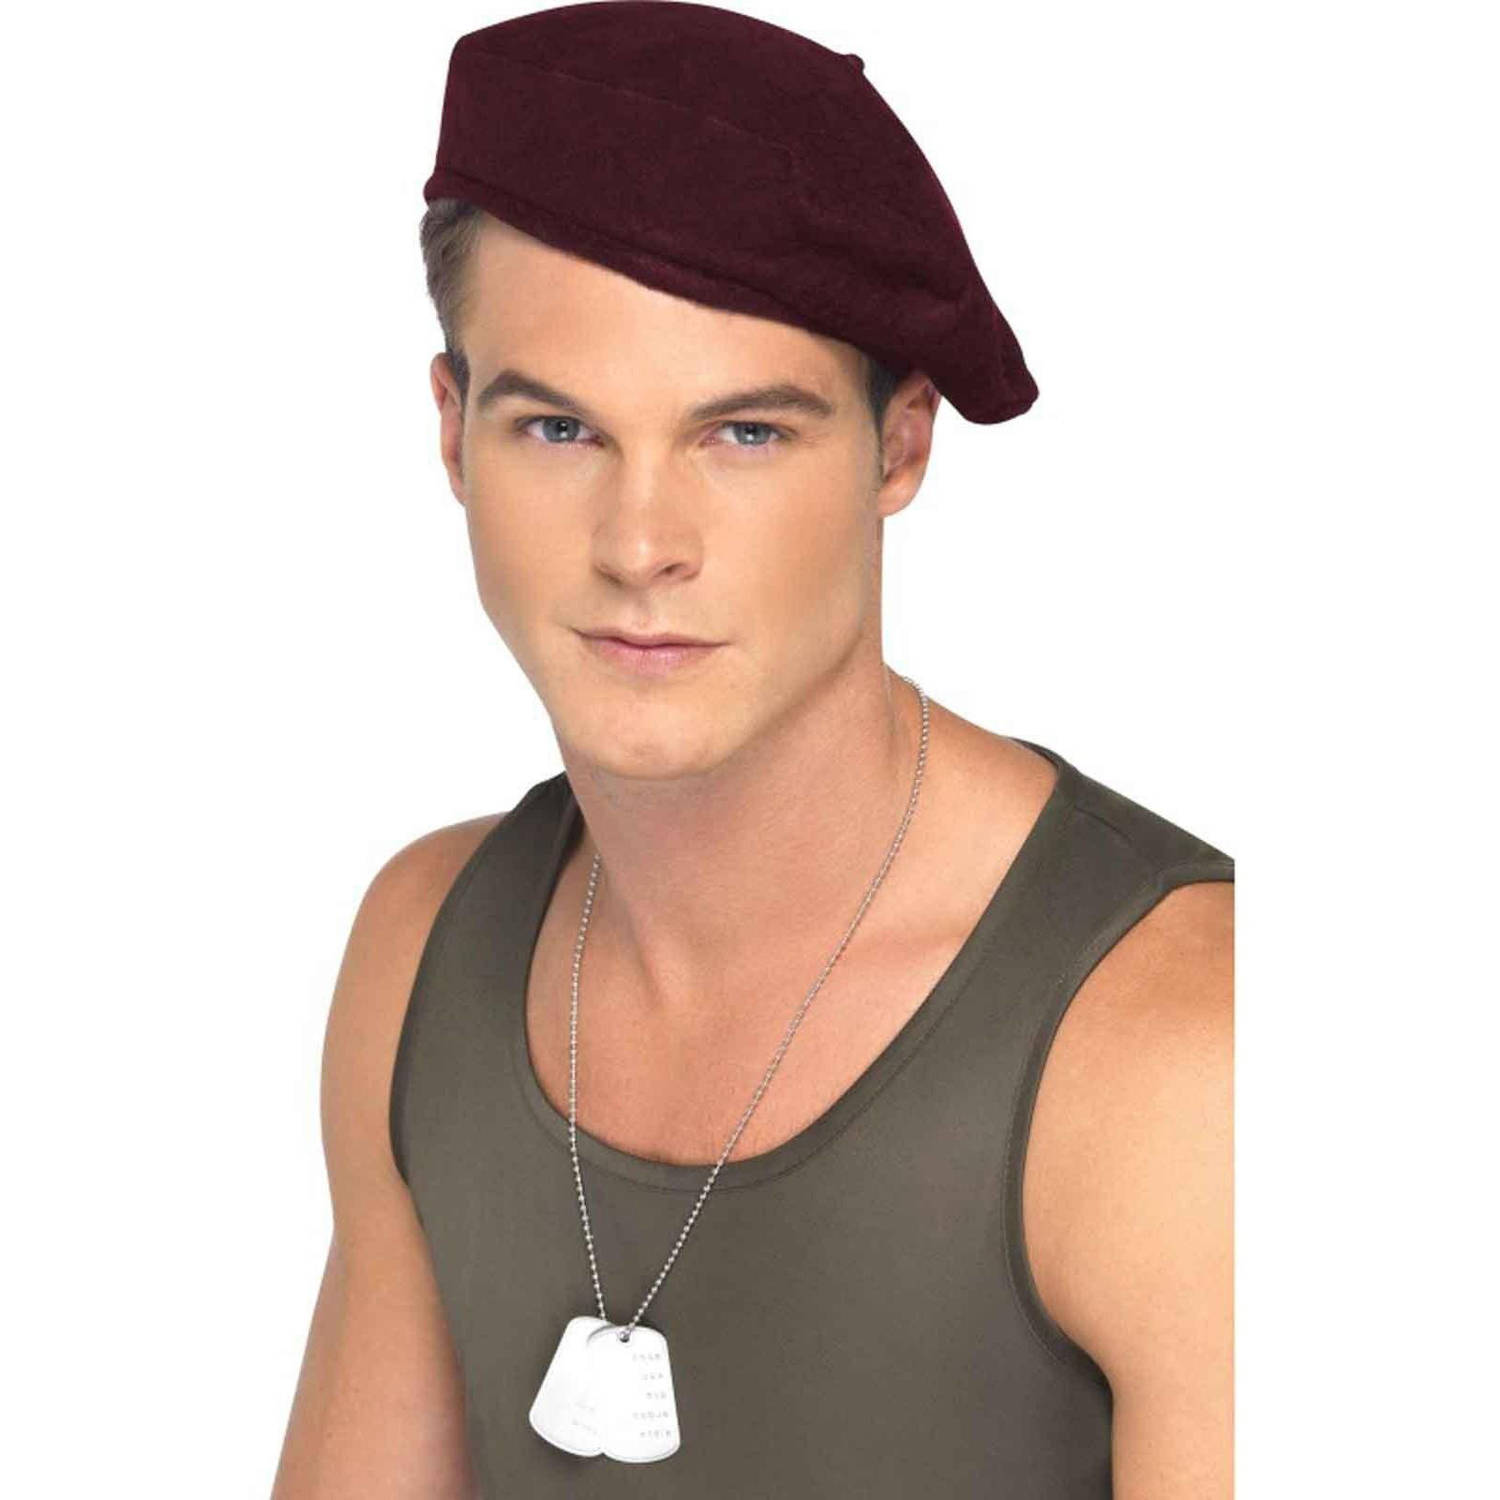 Red Soldiers Beret Halloween Accessory, Adult